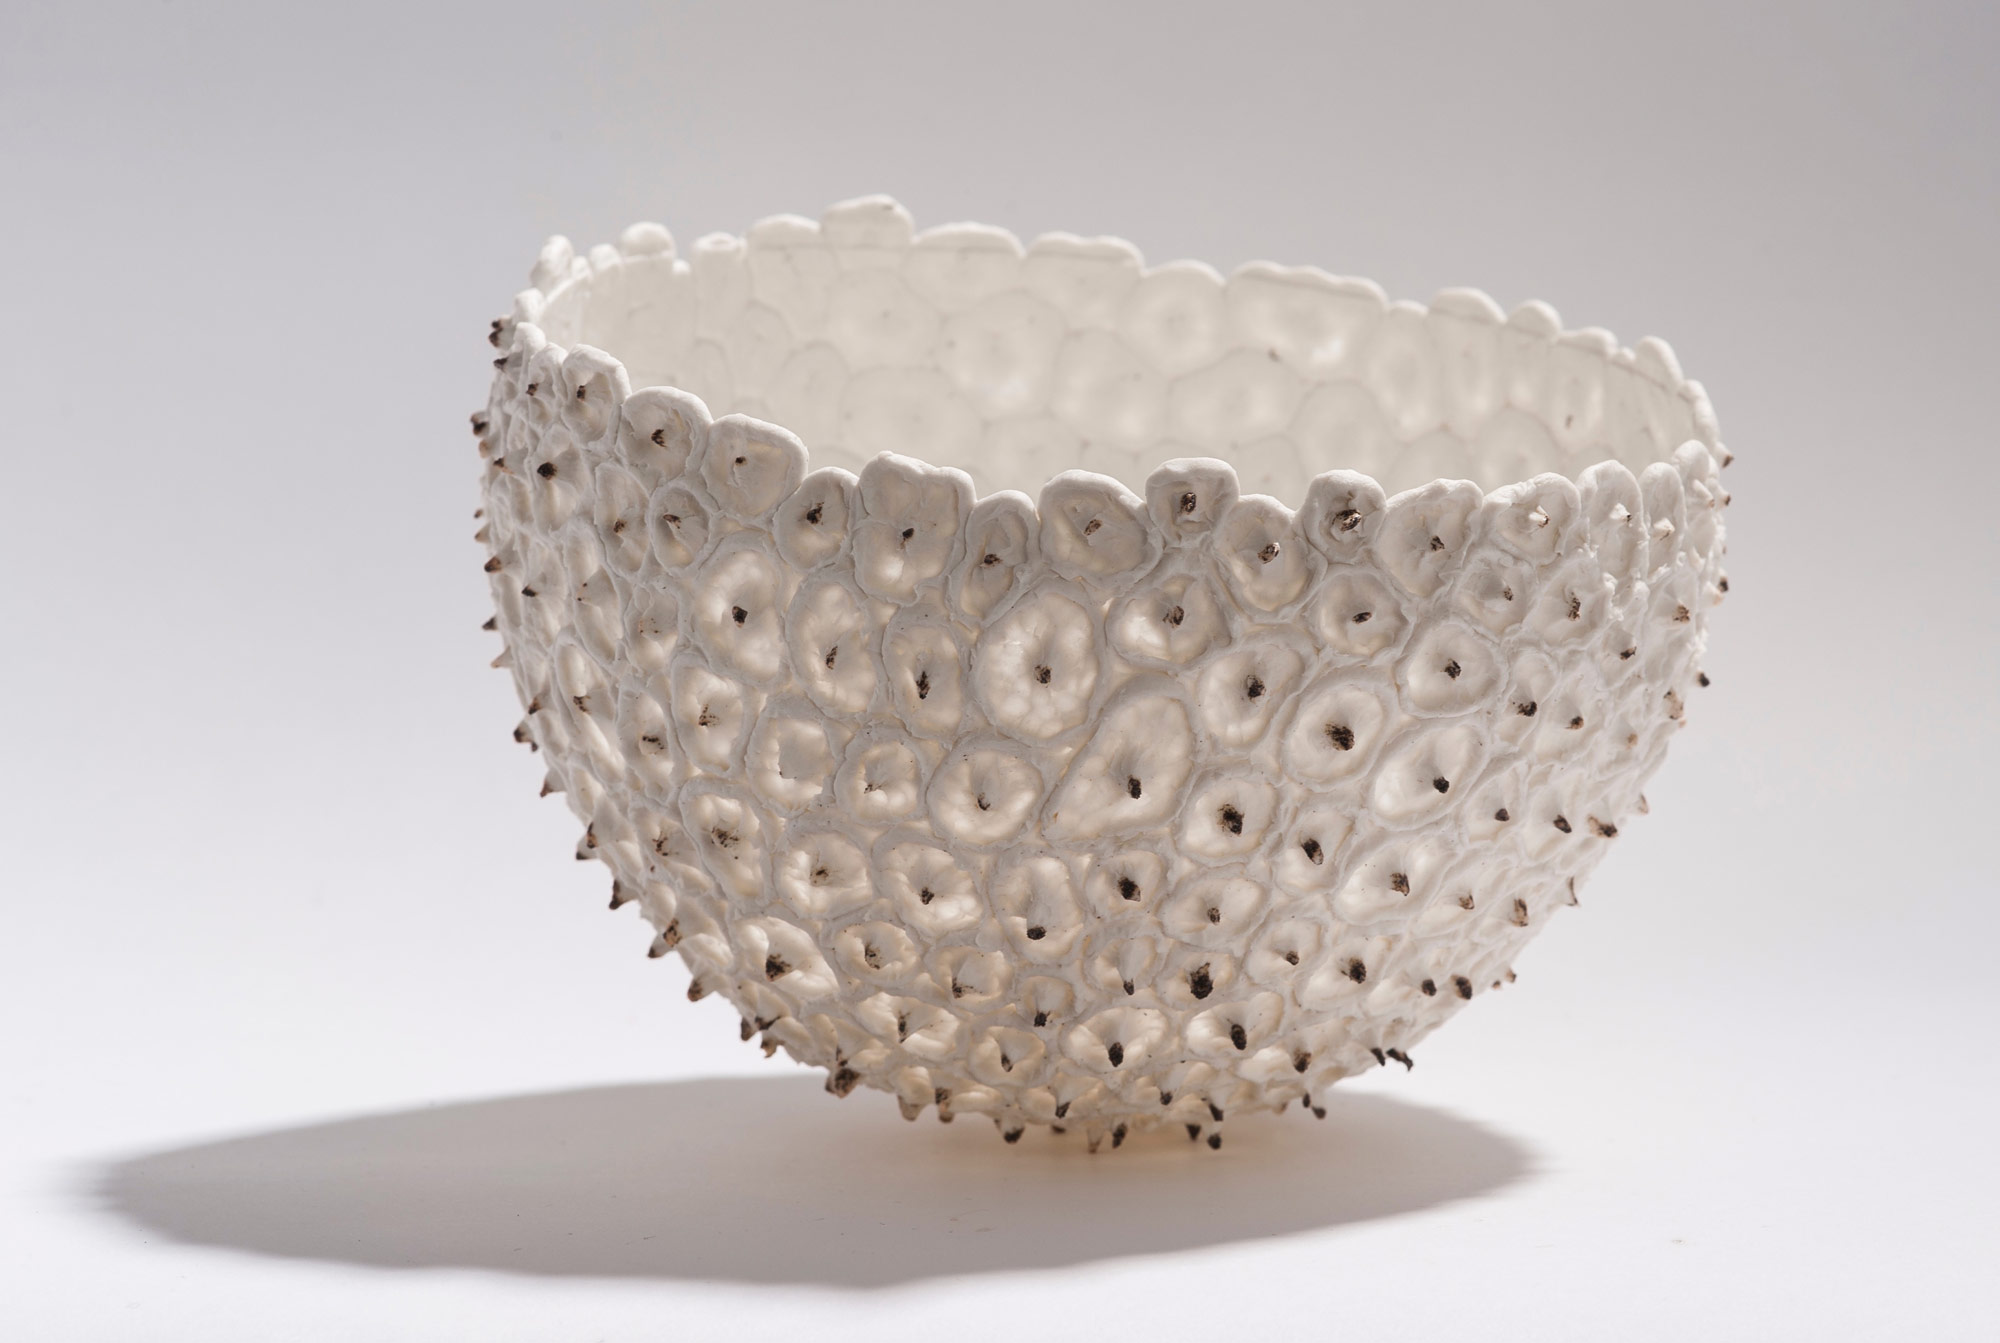 Porcelain Bowls Made with Balloons Design